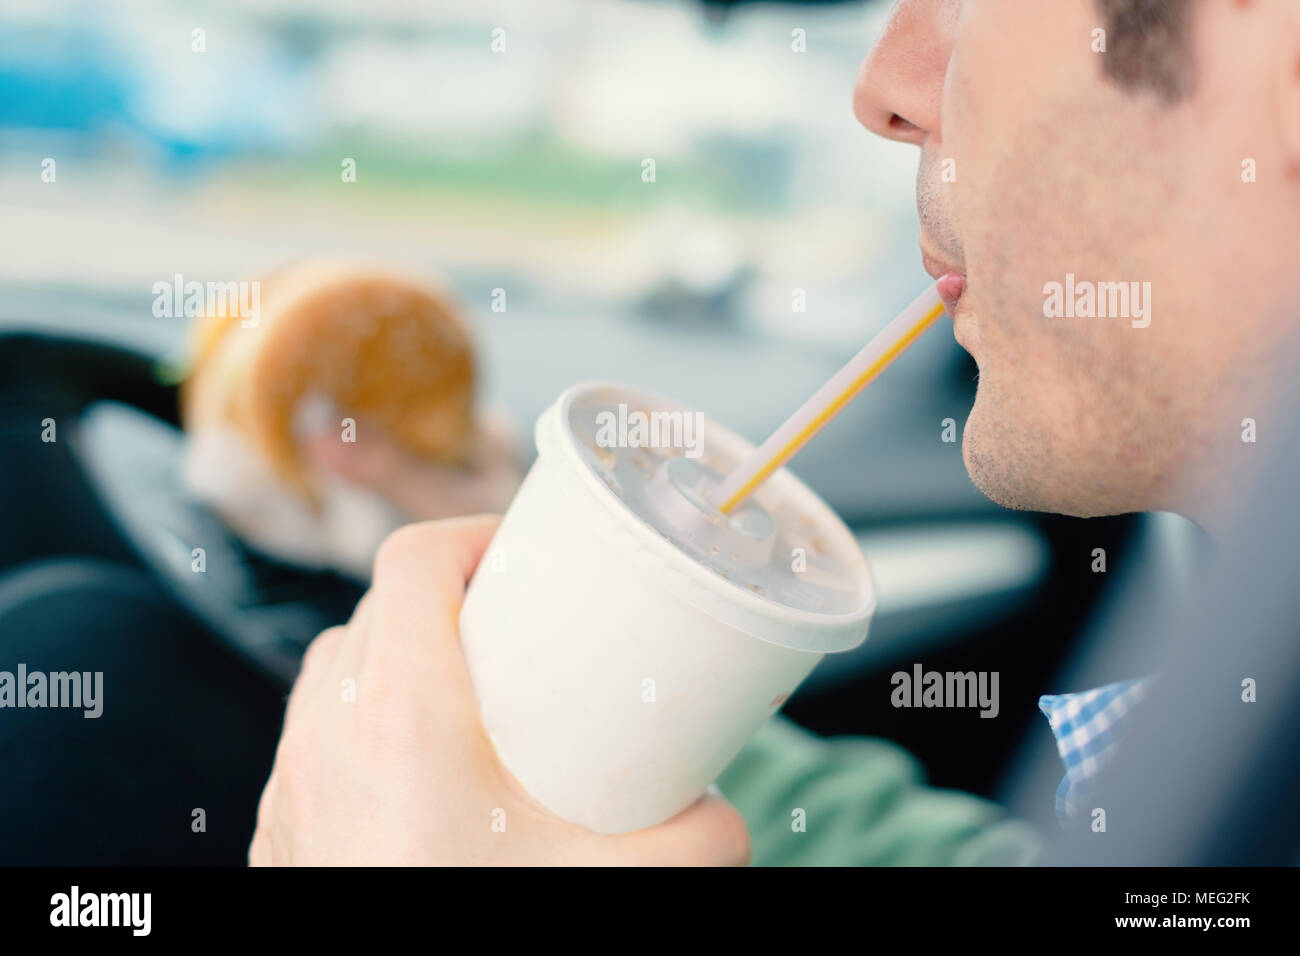 Man is dangerously eating junk food and cold drink while driving his car - Stock Image